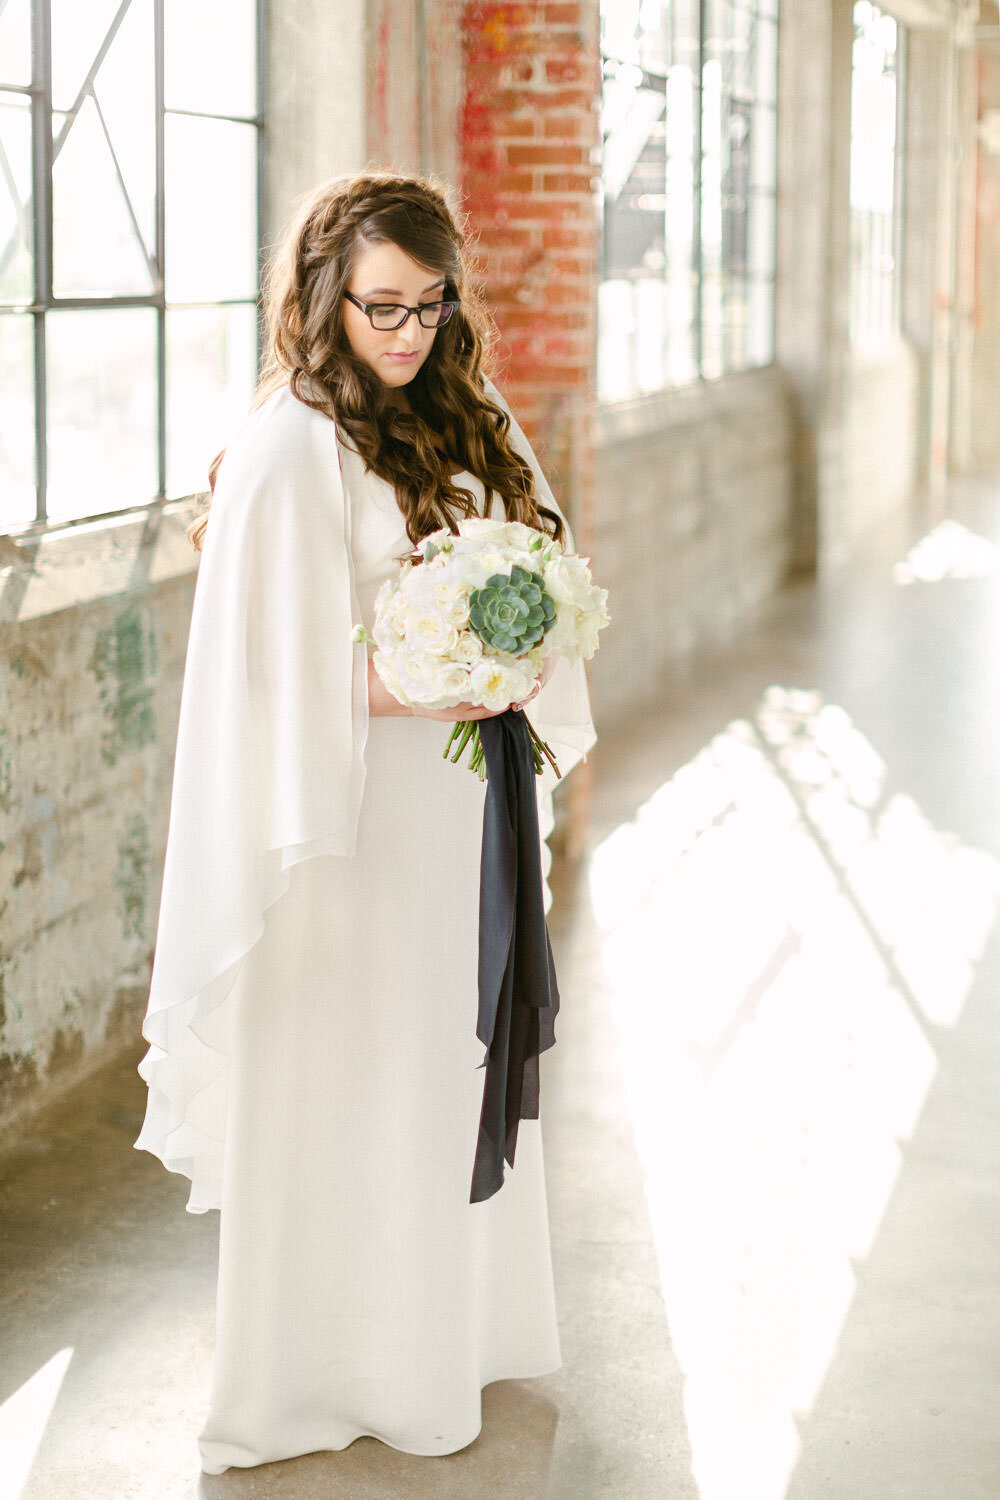 Intimate Houston Wedding bride photos in white cape wedding dress and bouquet